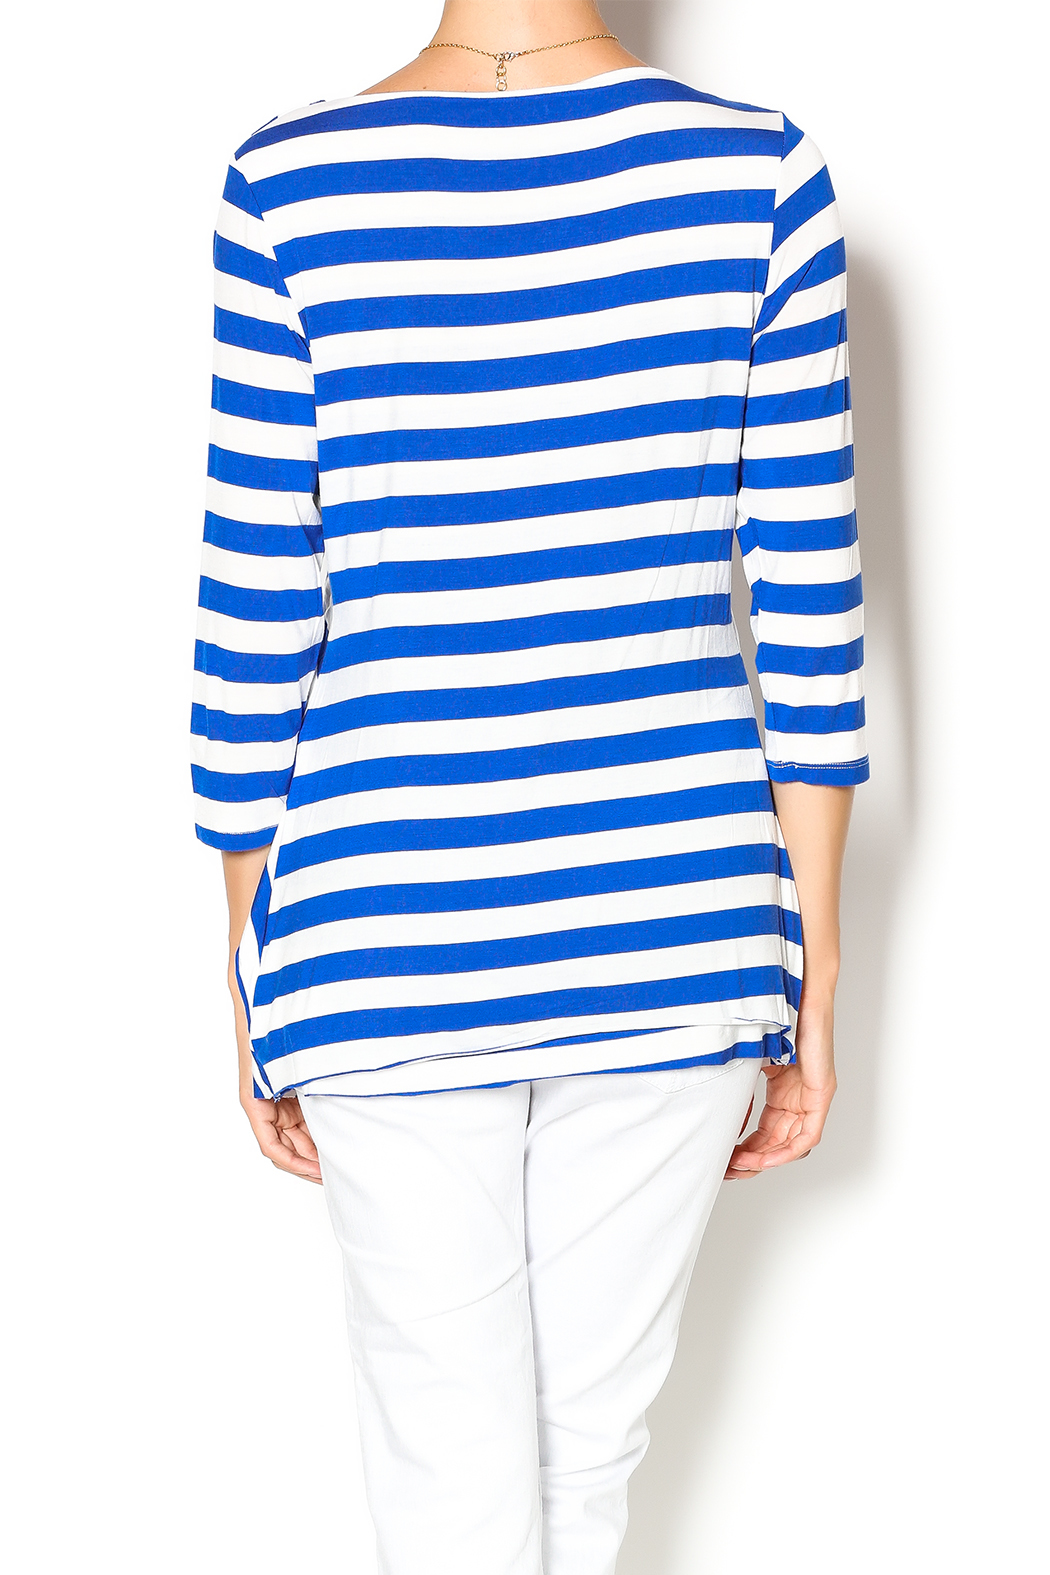 Vecceli Italy Striped Tunic - Back Cropped Image